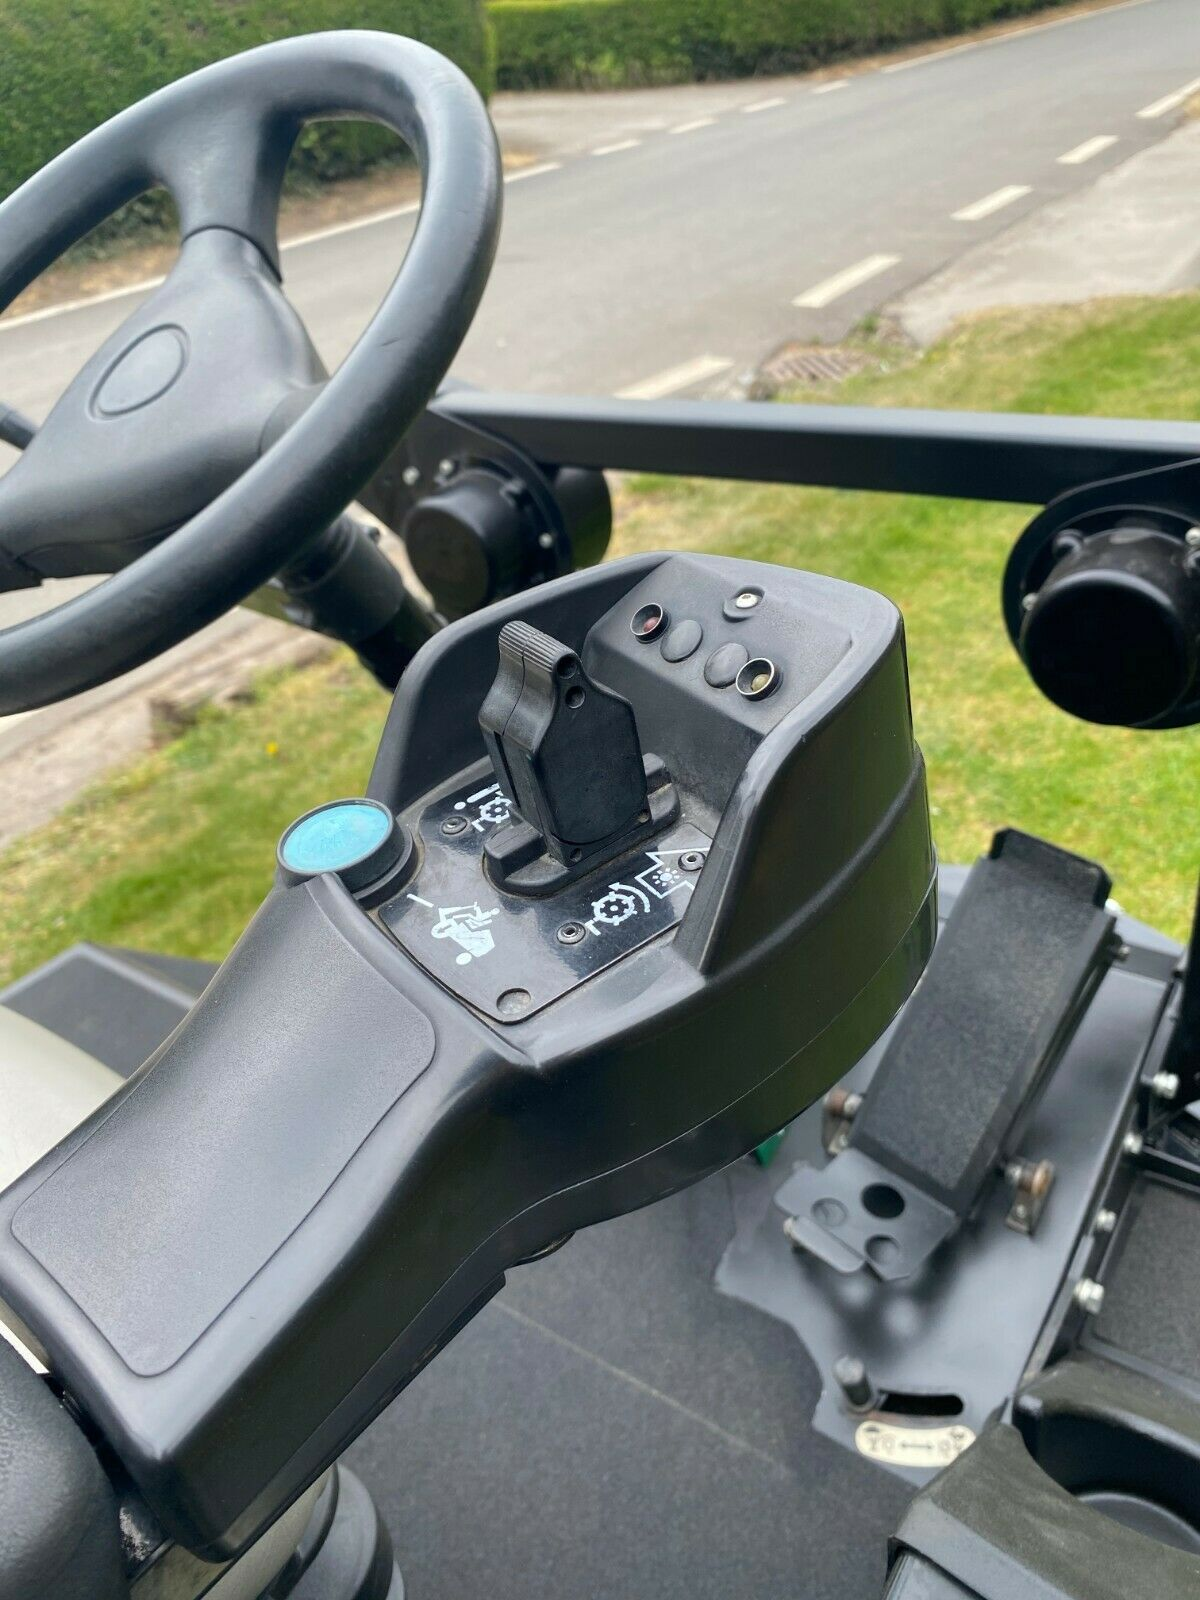 """RANSOMES HR3300T UPFRONT ROTARY, 60"""" CUT, 4x4, DIESEL, YEAR 2014, RIDE ON MOWER *PLUS VAT* - Image 10 of 10"""